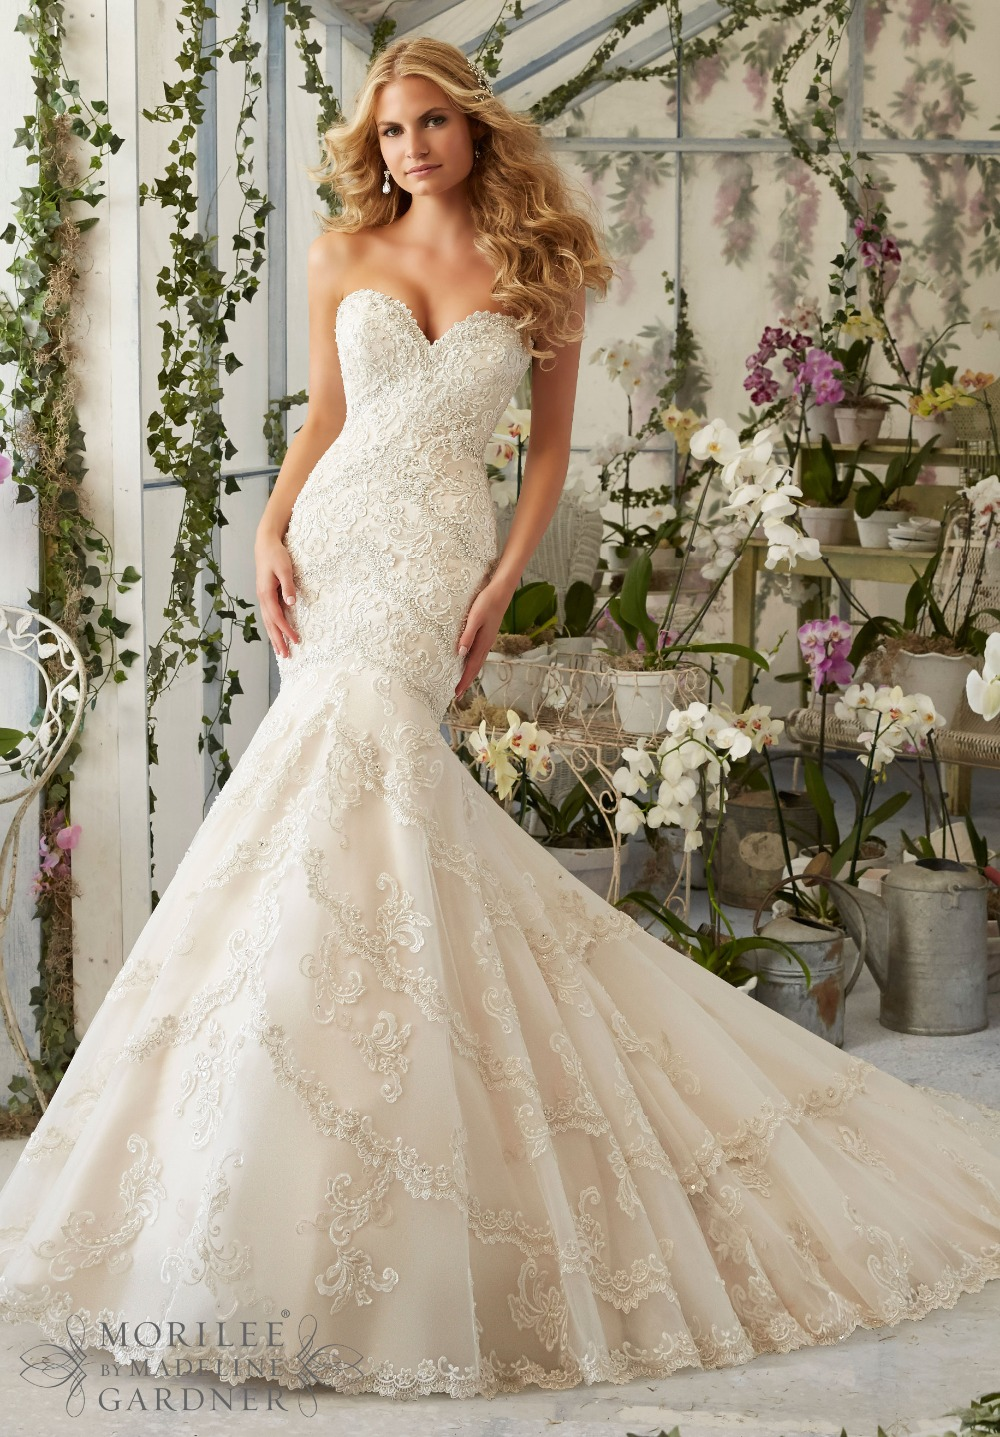 aliexpresscom buy ew403 romantic new sweetheart off shoulder sexy backless mermaid wedding dress 2016 heavy beading designer bride dresses white from